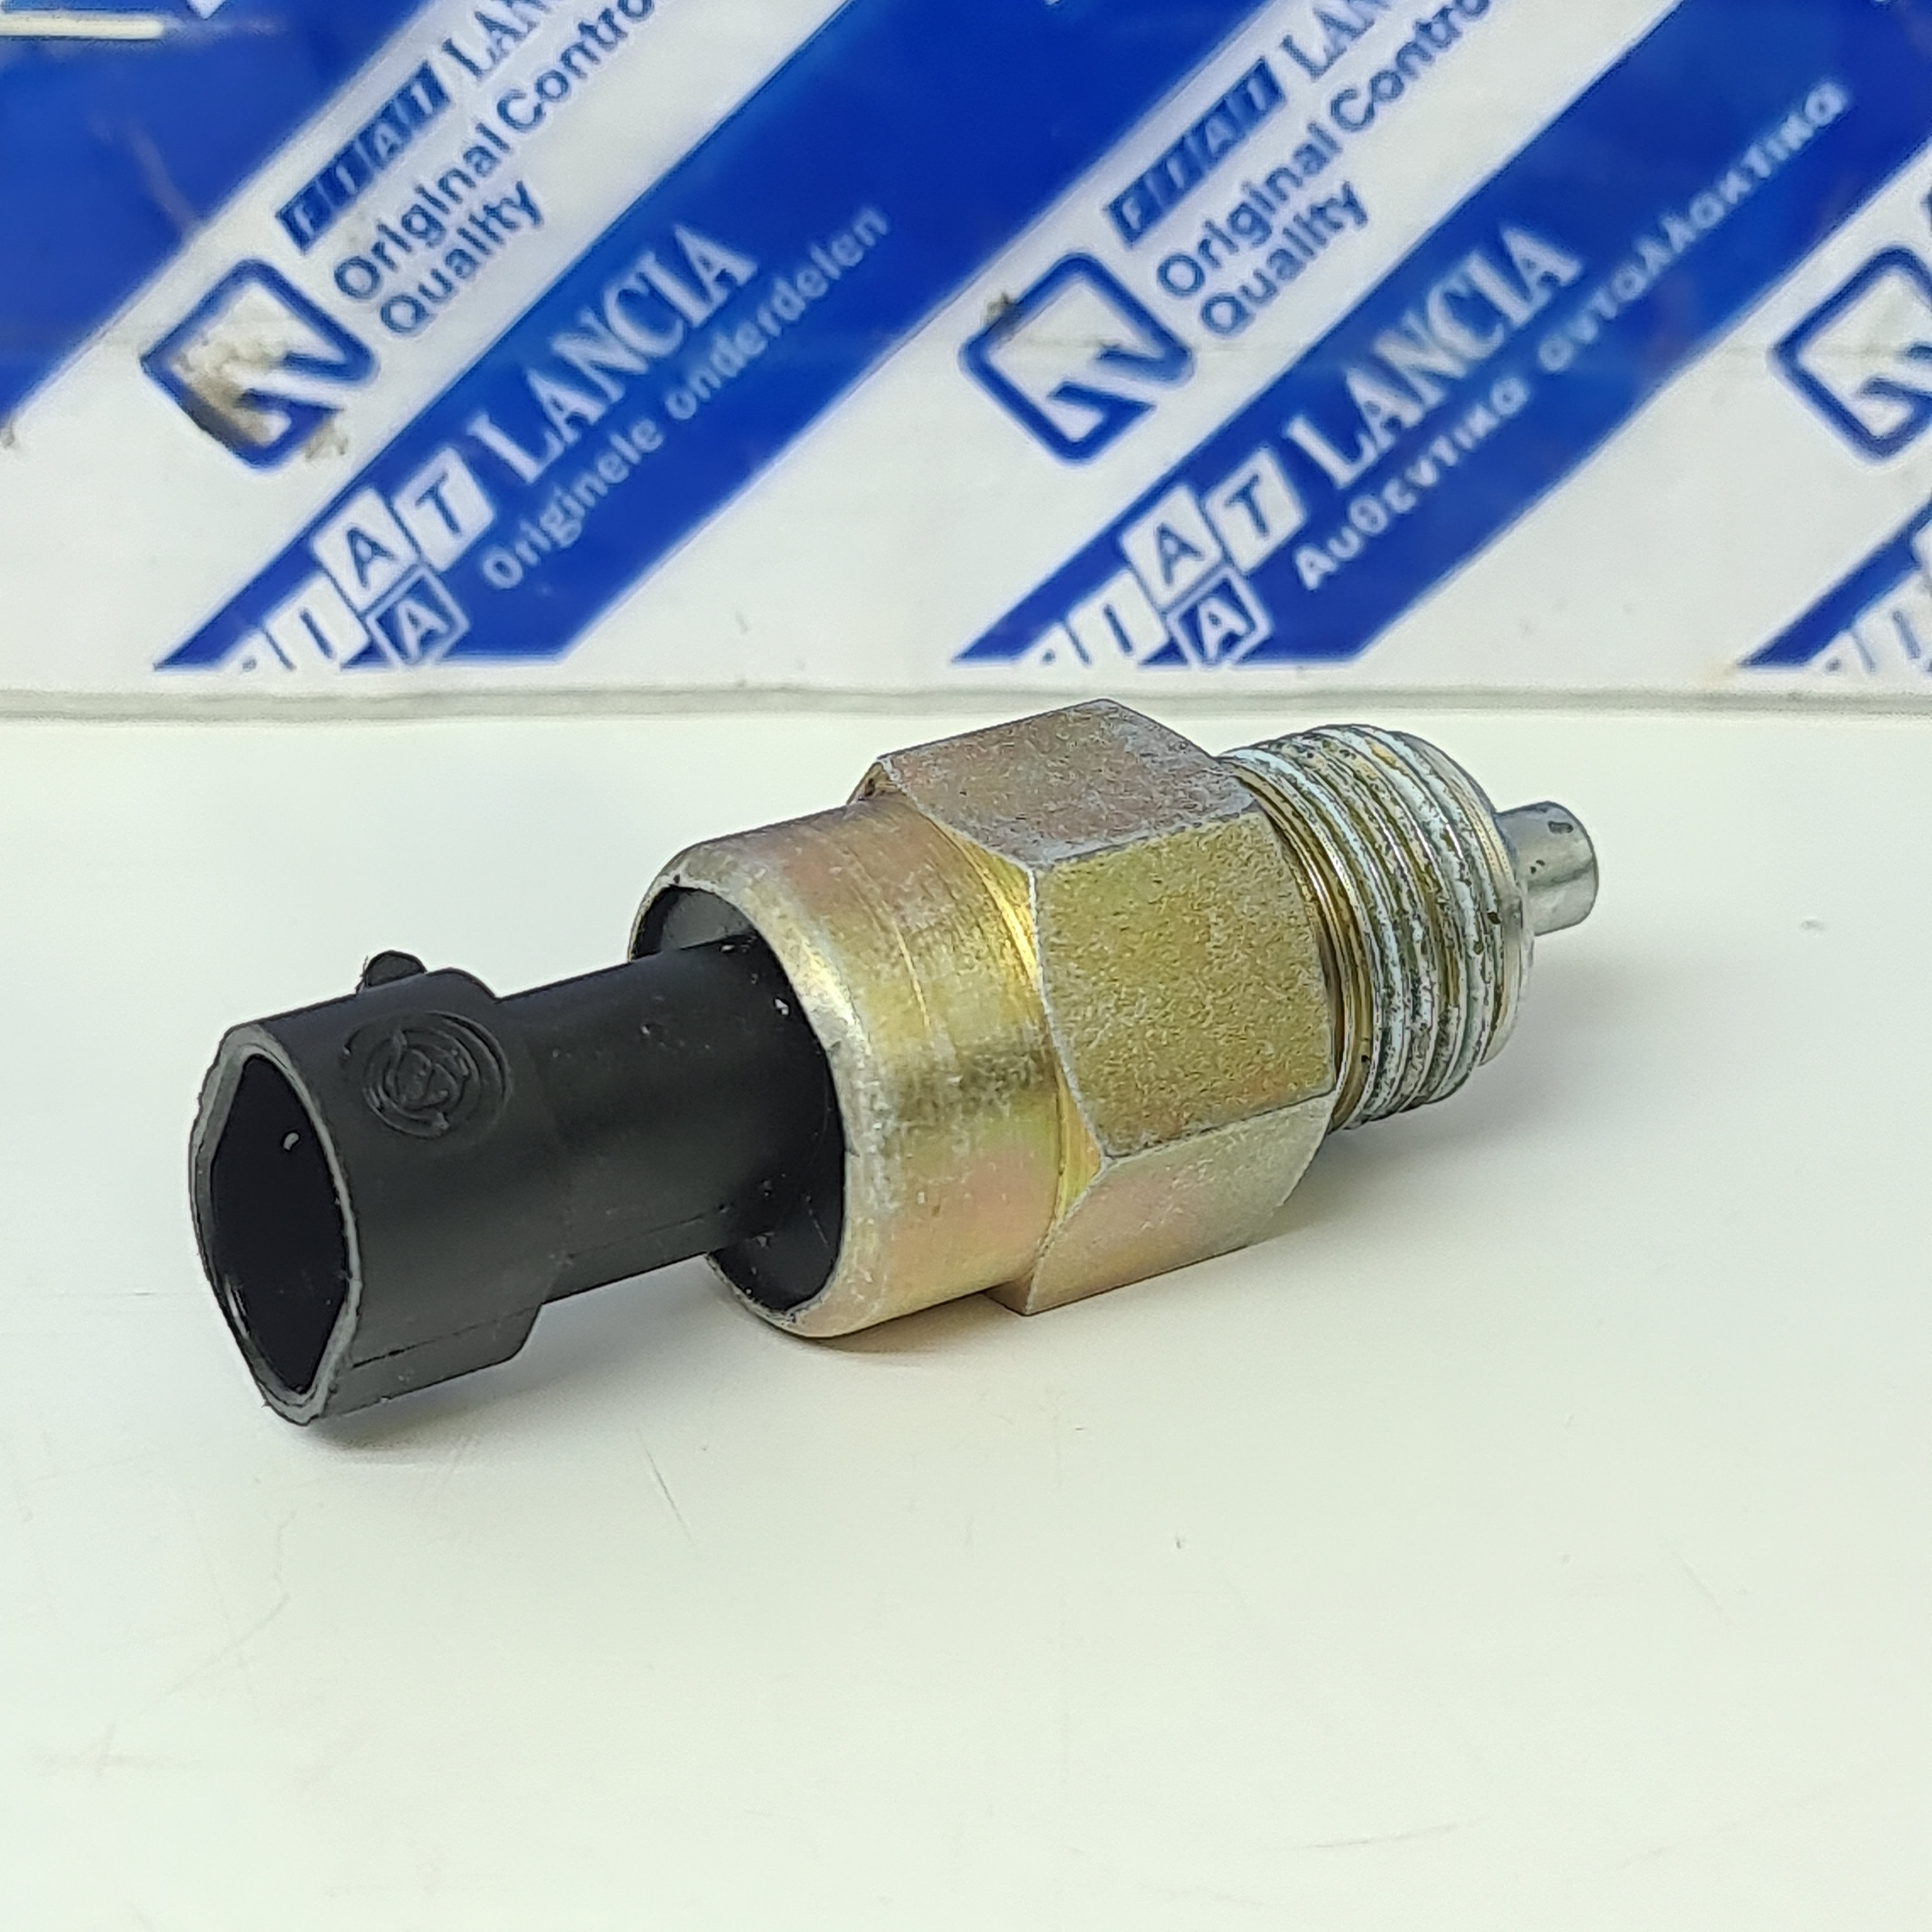 REVERSE LIGHT SWITCH ALFA ROMEO 145 - 146 - MITO ORIGINALE 55203408